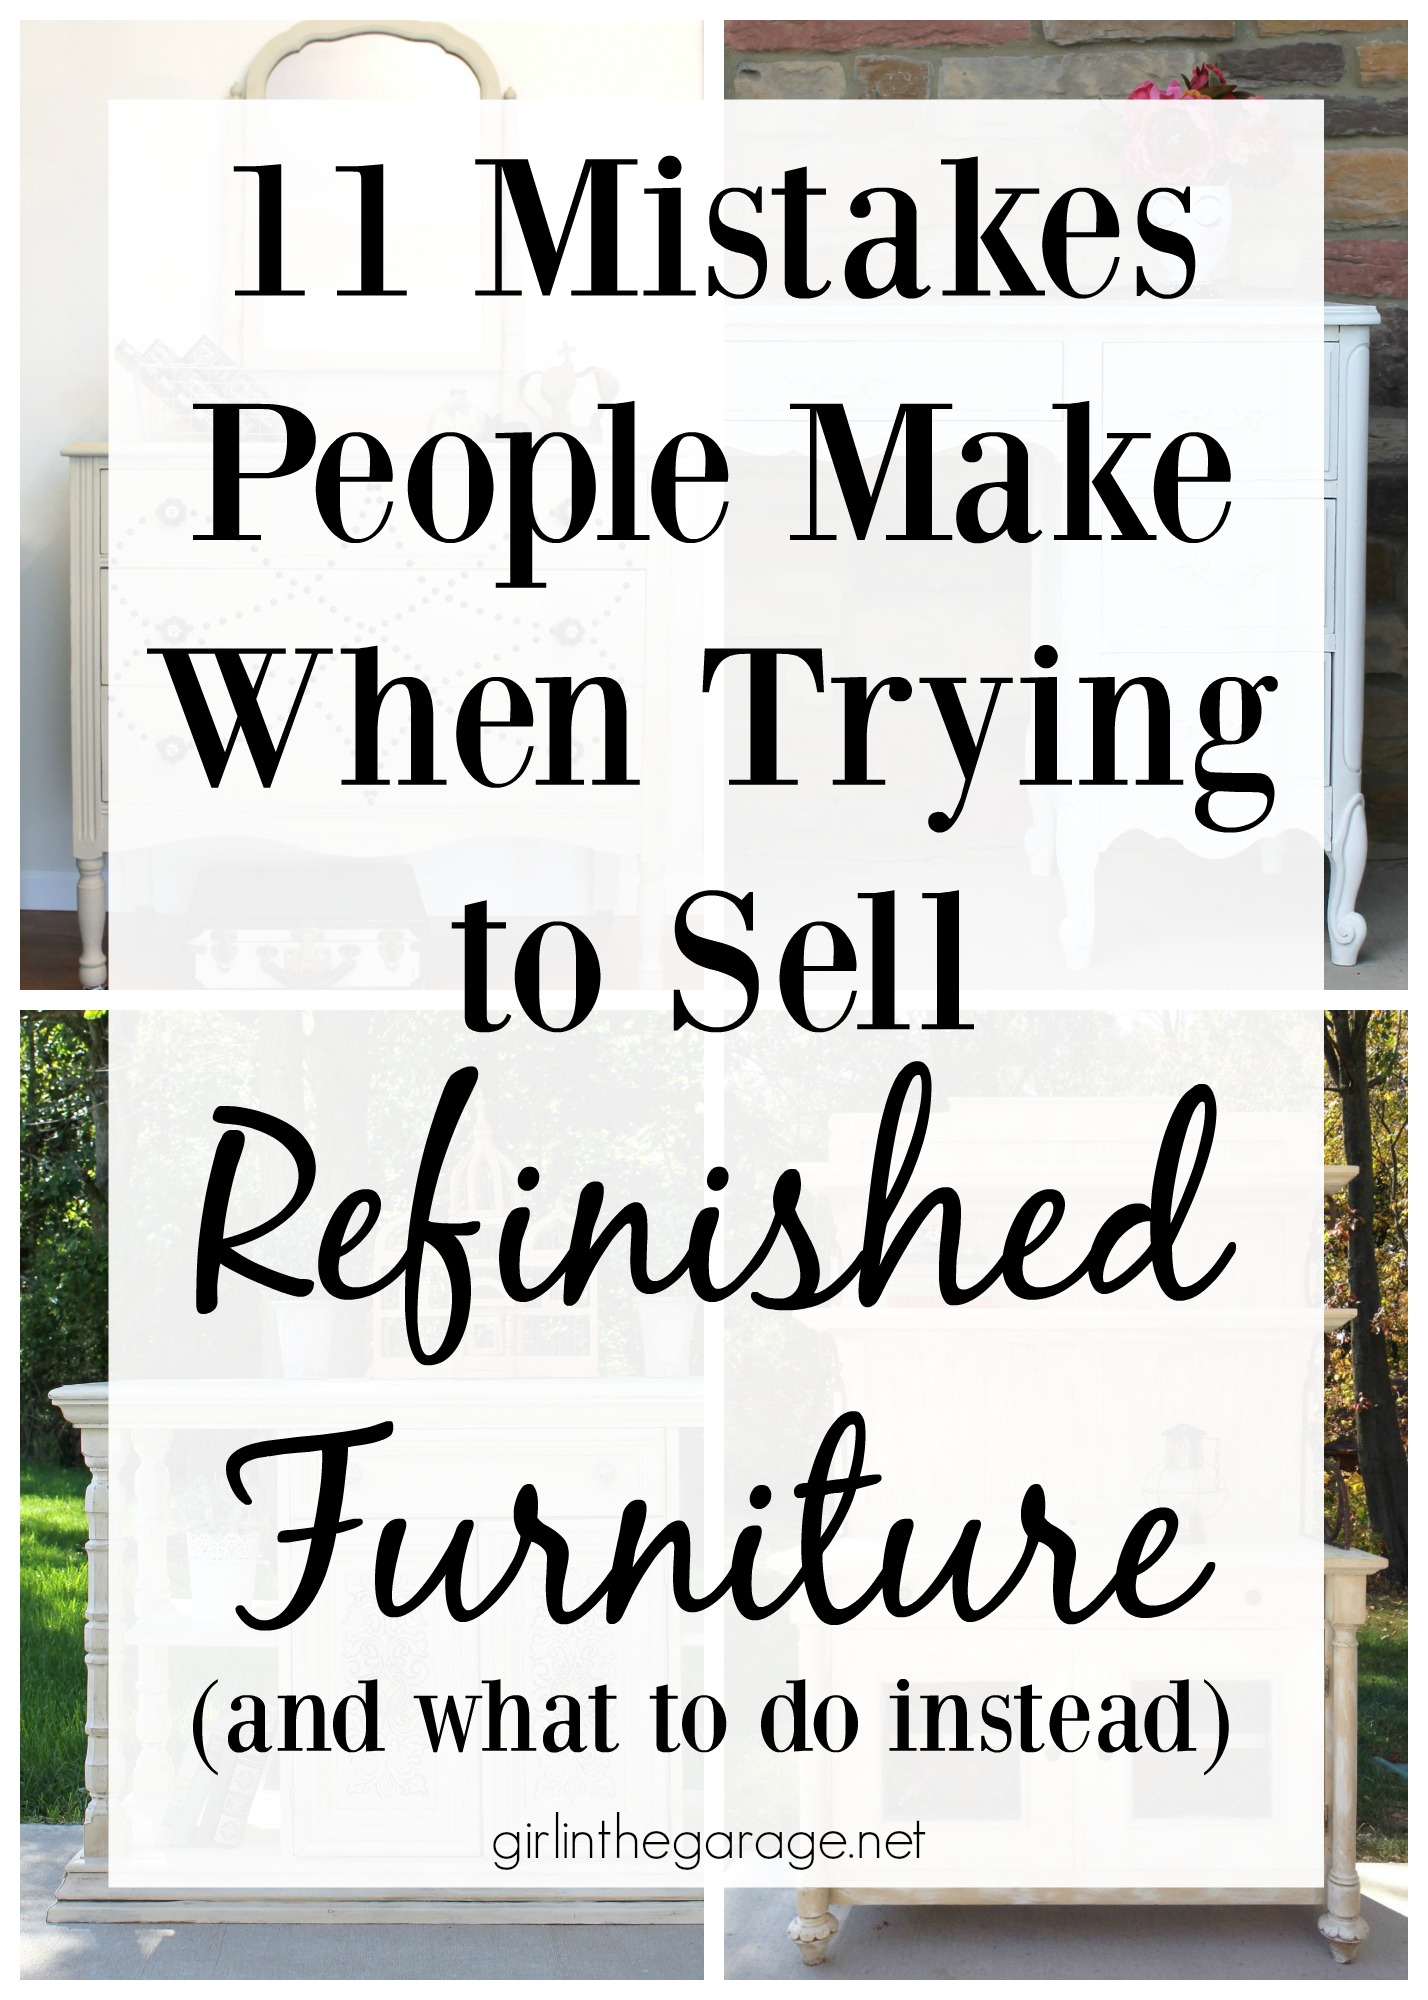 Garage Sale Book Prices 11 Mistakes People Make When Trying To Sell Refinished Furniture